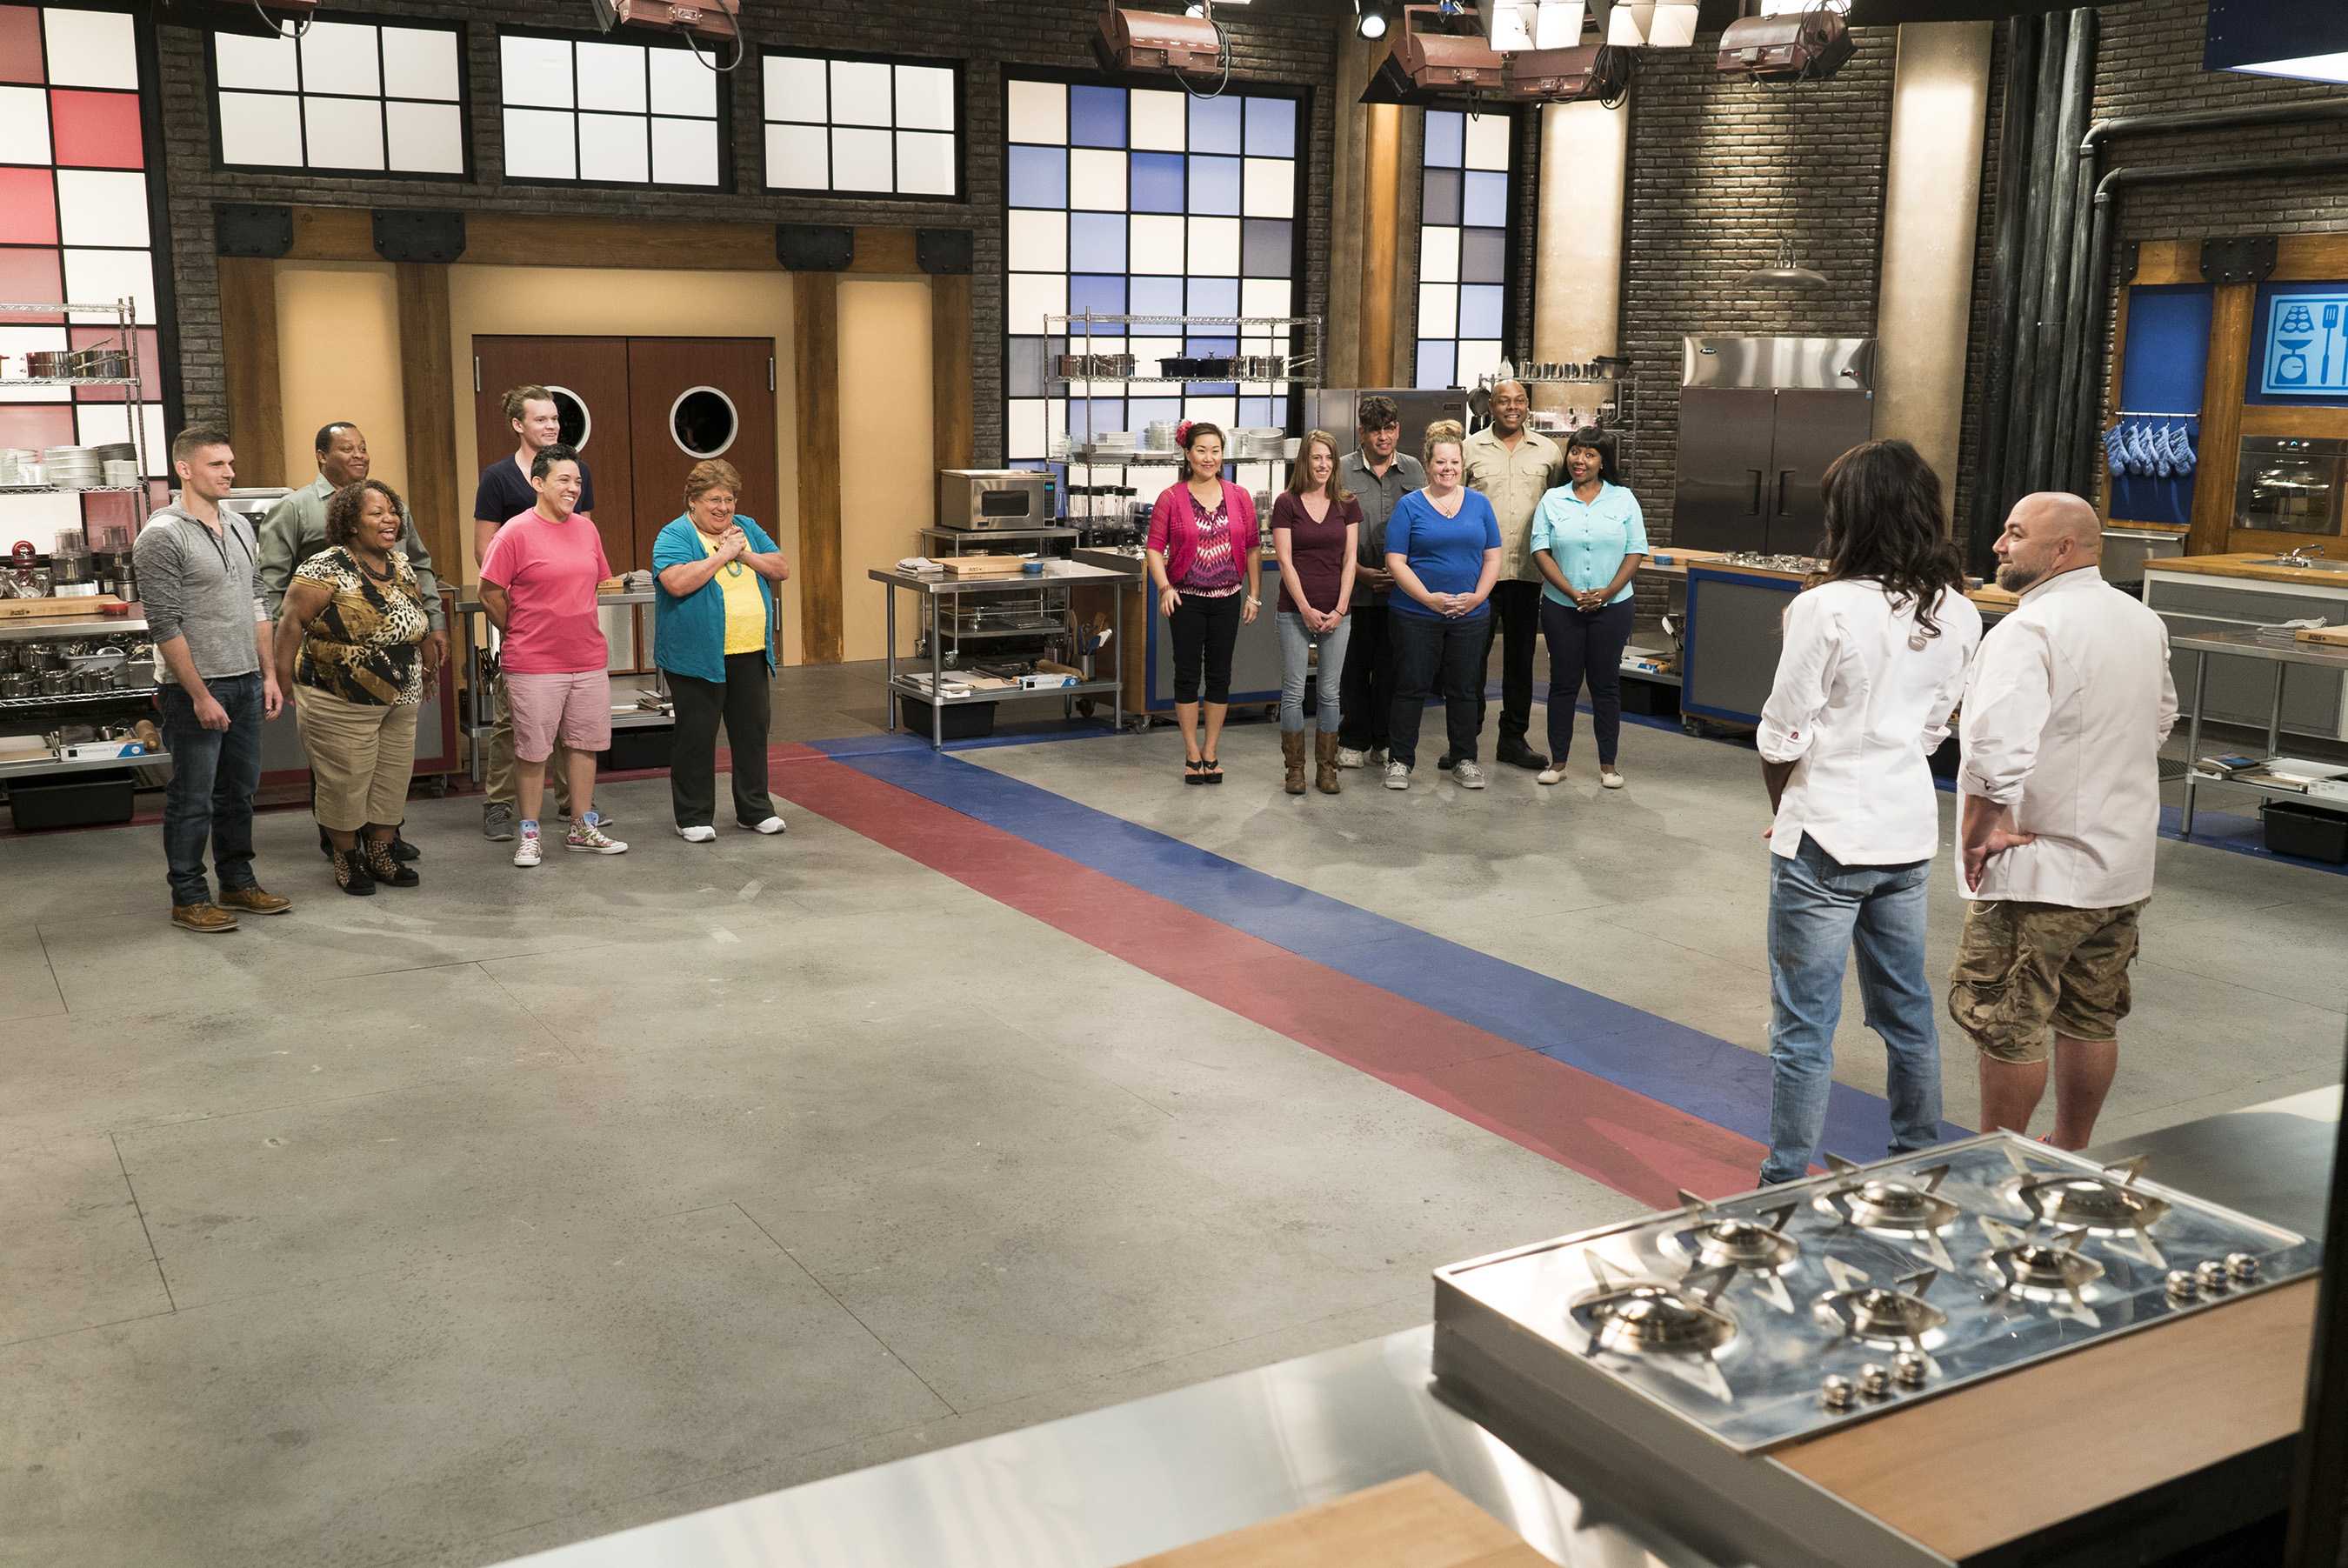 Hosts Duff Goldman and Lorraine Pascale with competitors on Food Network's Worst Bakers in America